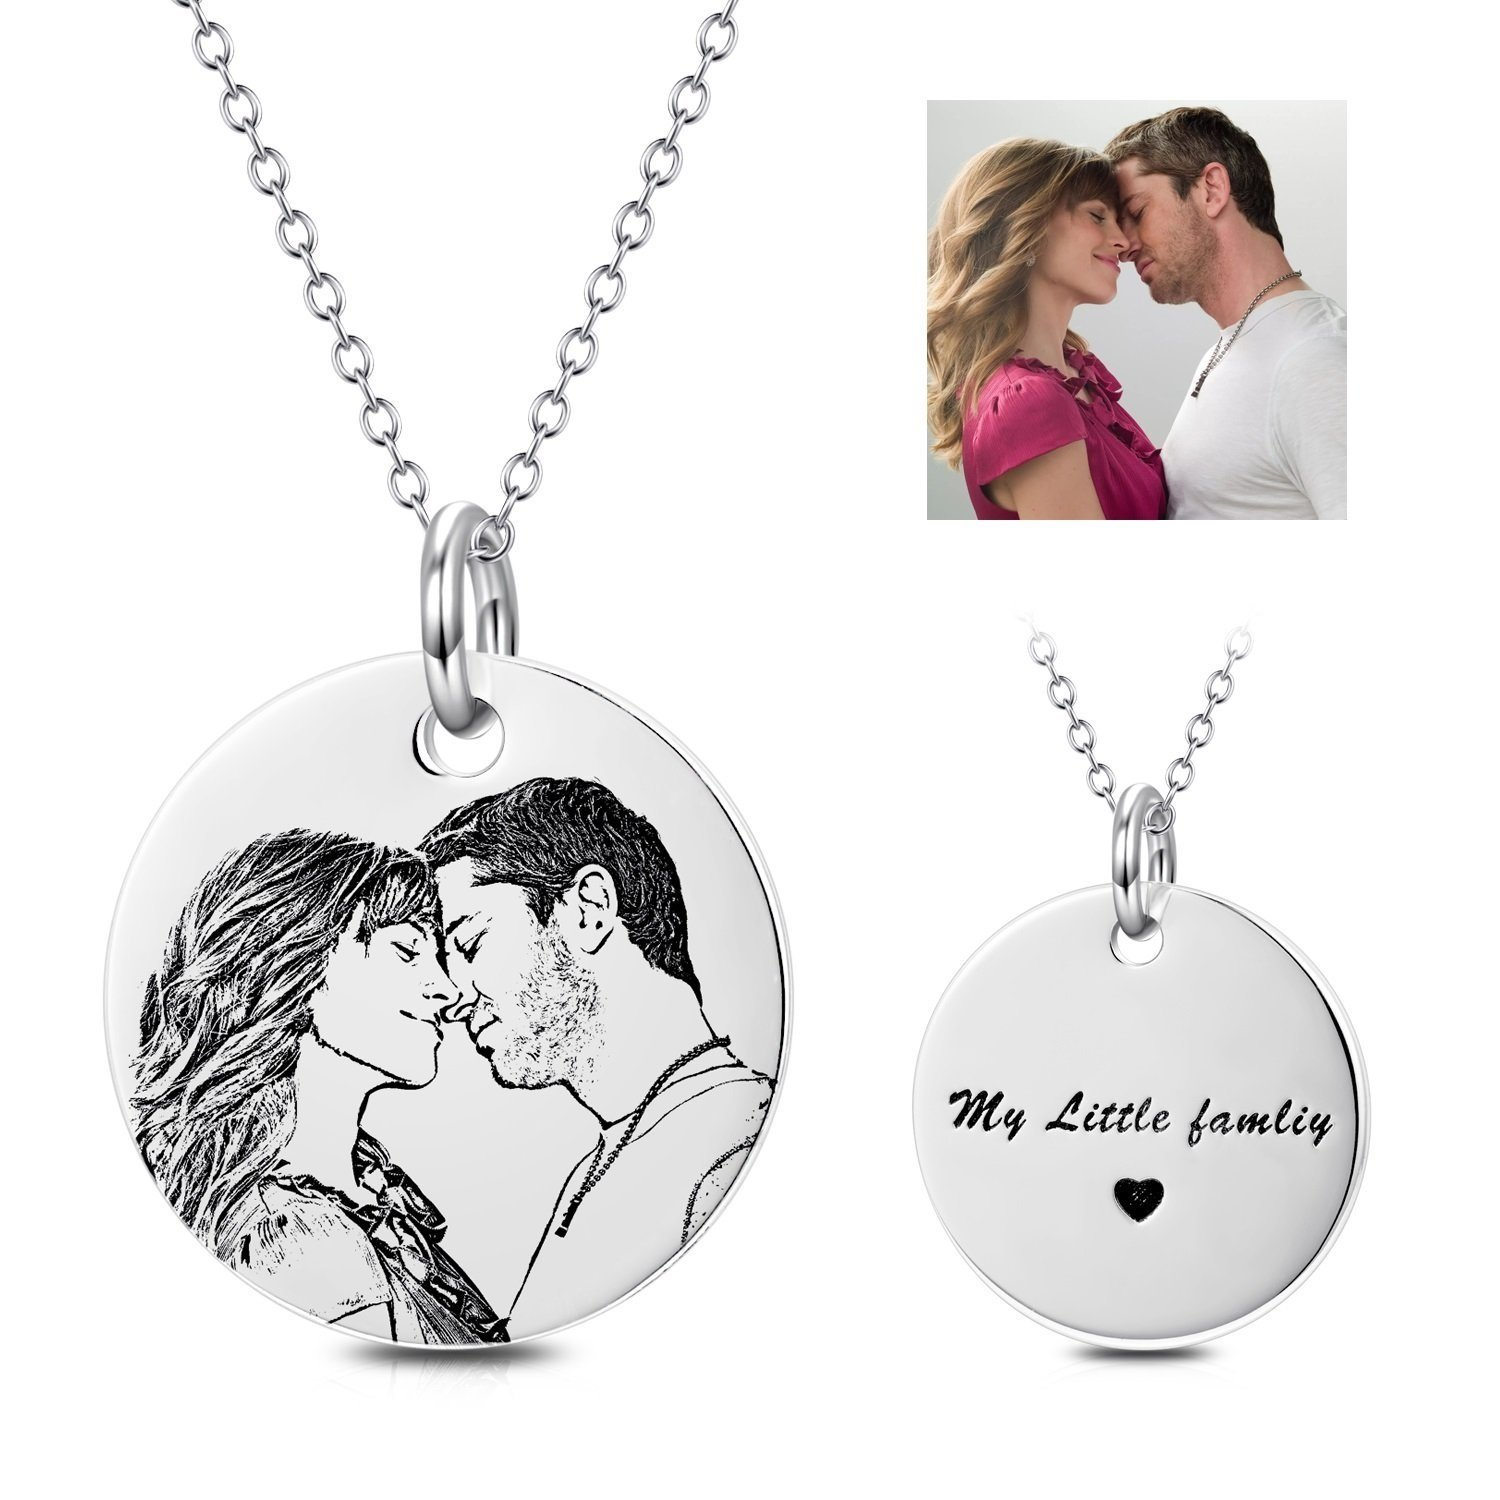 LONAGO Personalized Photo Necklace Custom Engraved Necklace Pendant Back and White Color Sterling Silver Gifts (Sterling Sliver, 16)